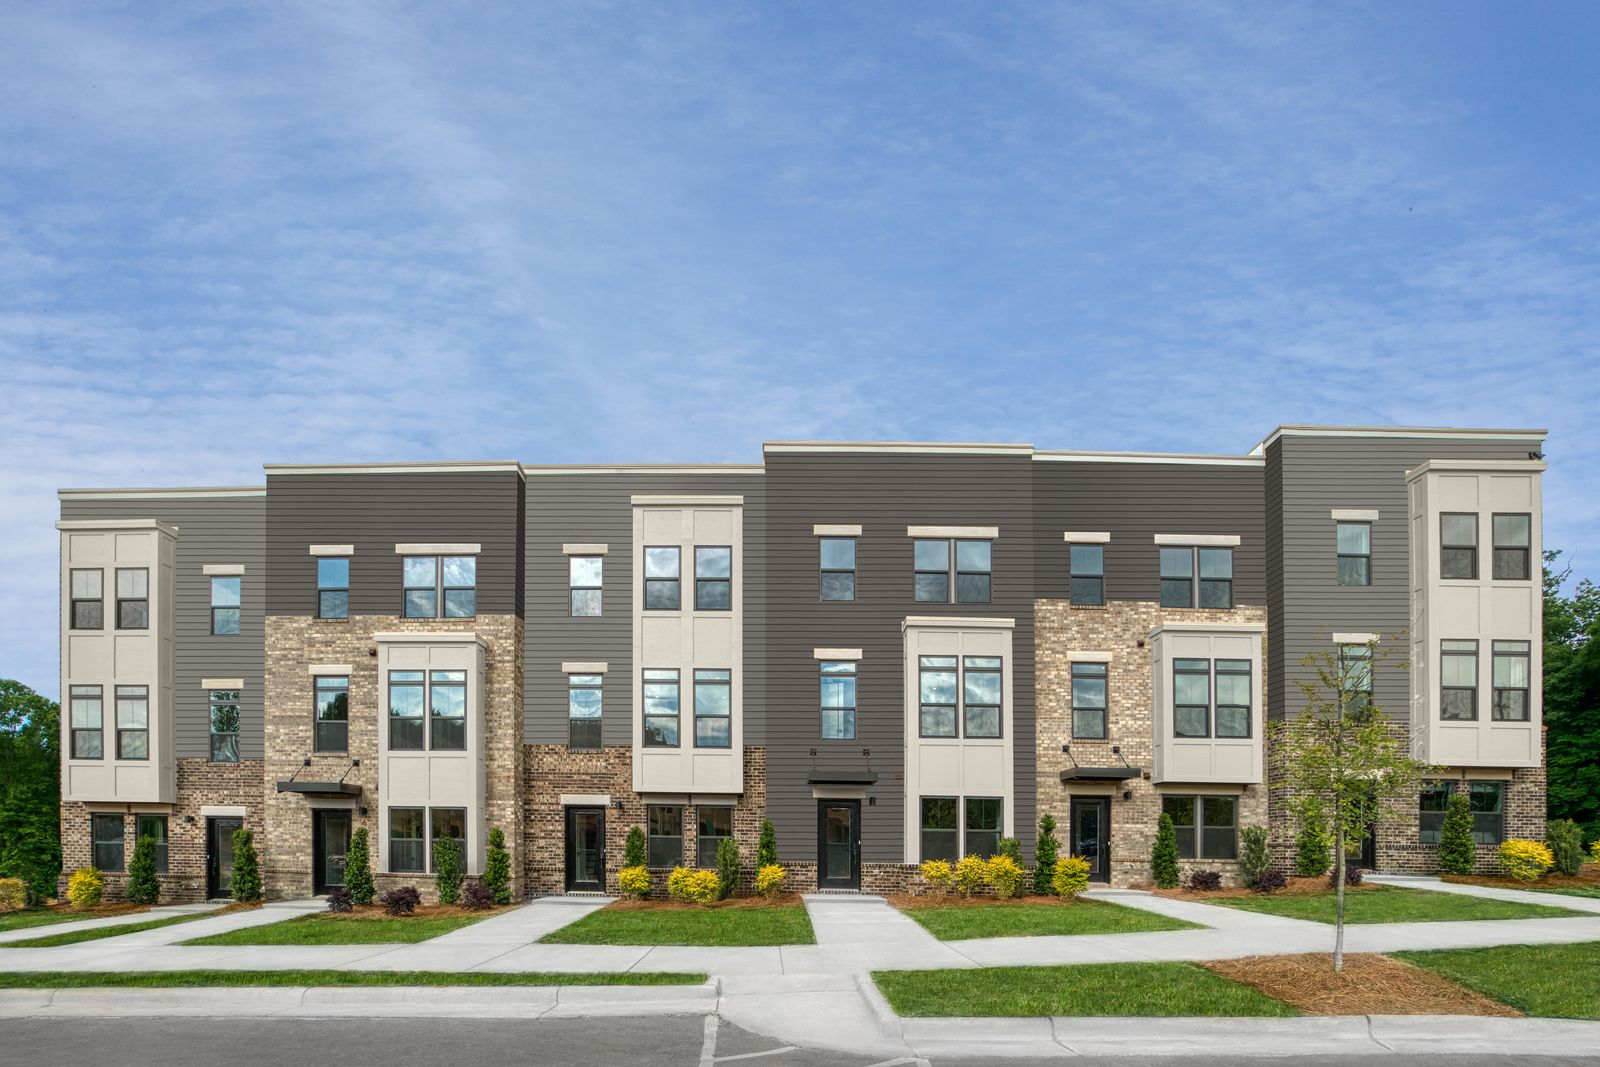 DREAM LIFESTYLE NEAR COTSWOLD, SOUTHPARK, AND UPTOWN CHARLOTTE:Live close to work, trendy restaurants, and more—Schedule a visit to Wendover Green!